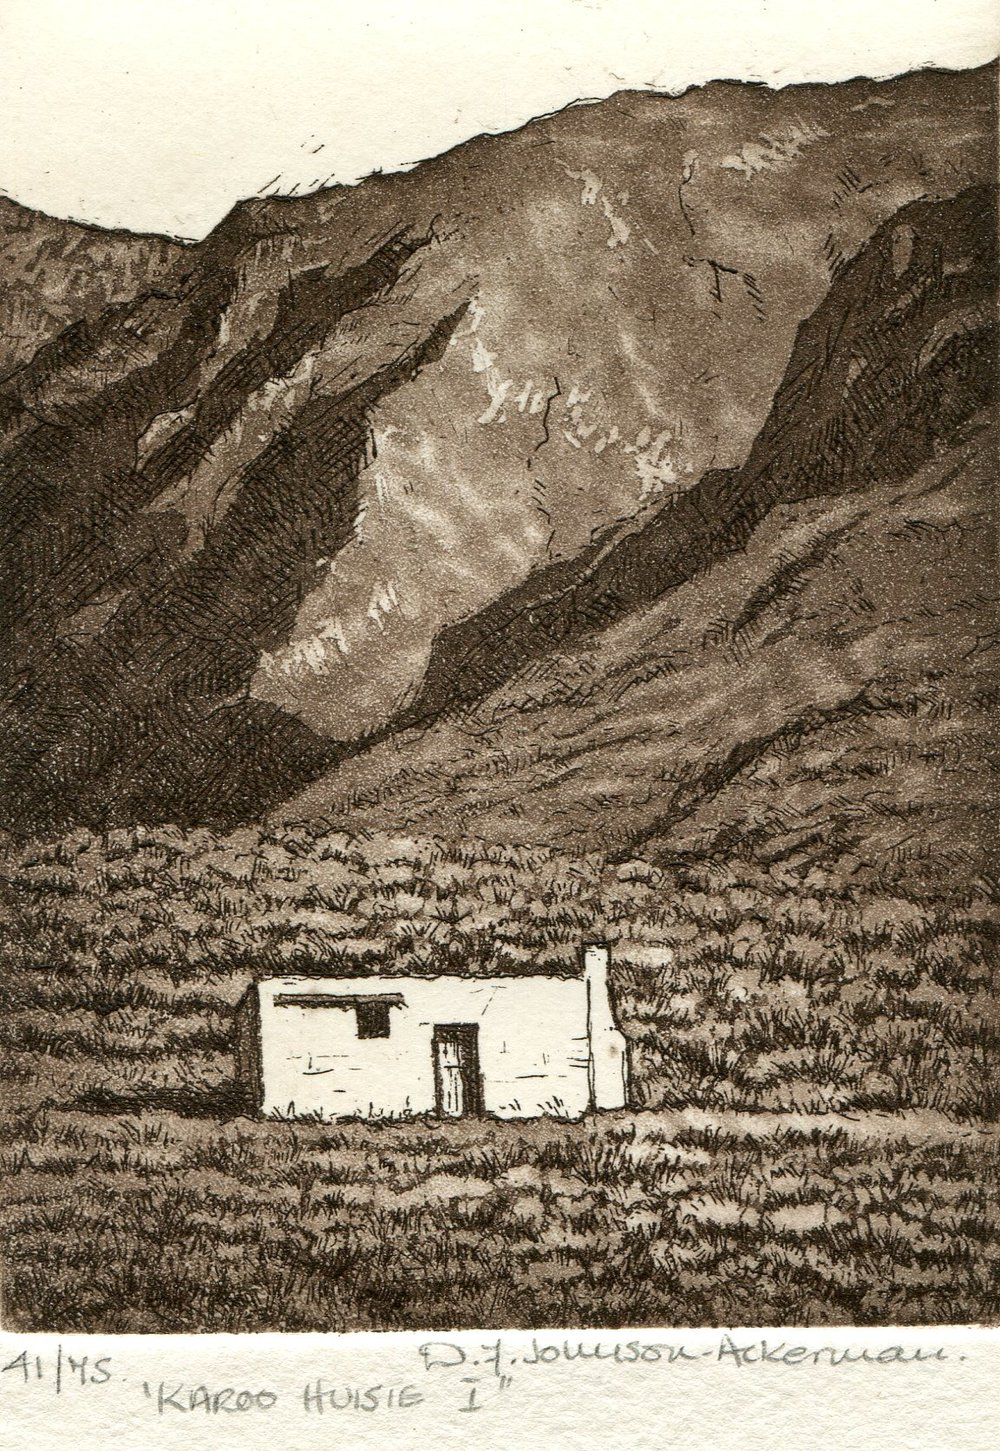 43b  Diane Johnson-Ackerman  Karoo huisie I  etching on paper